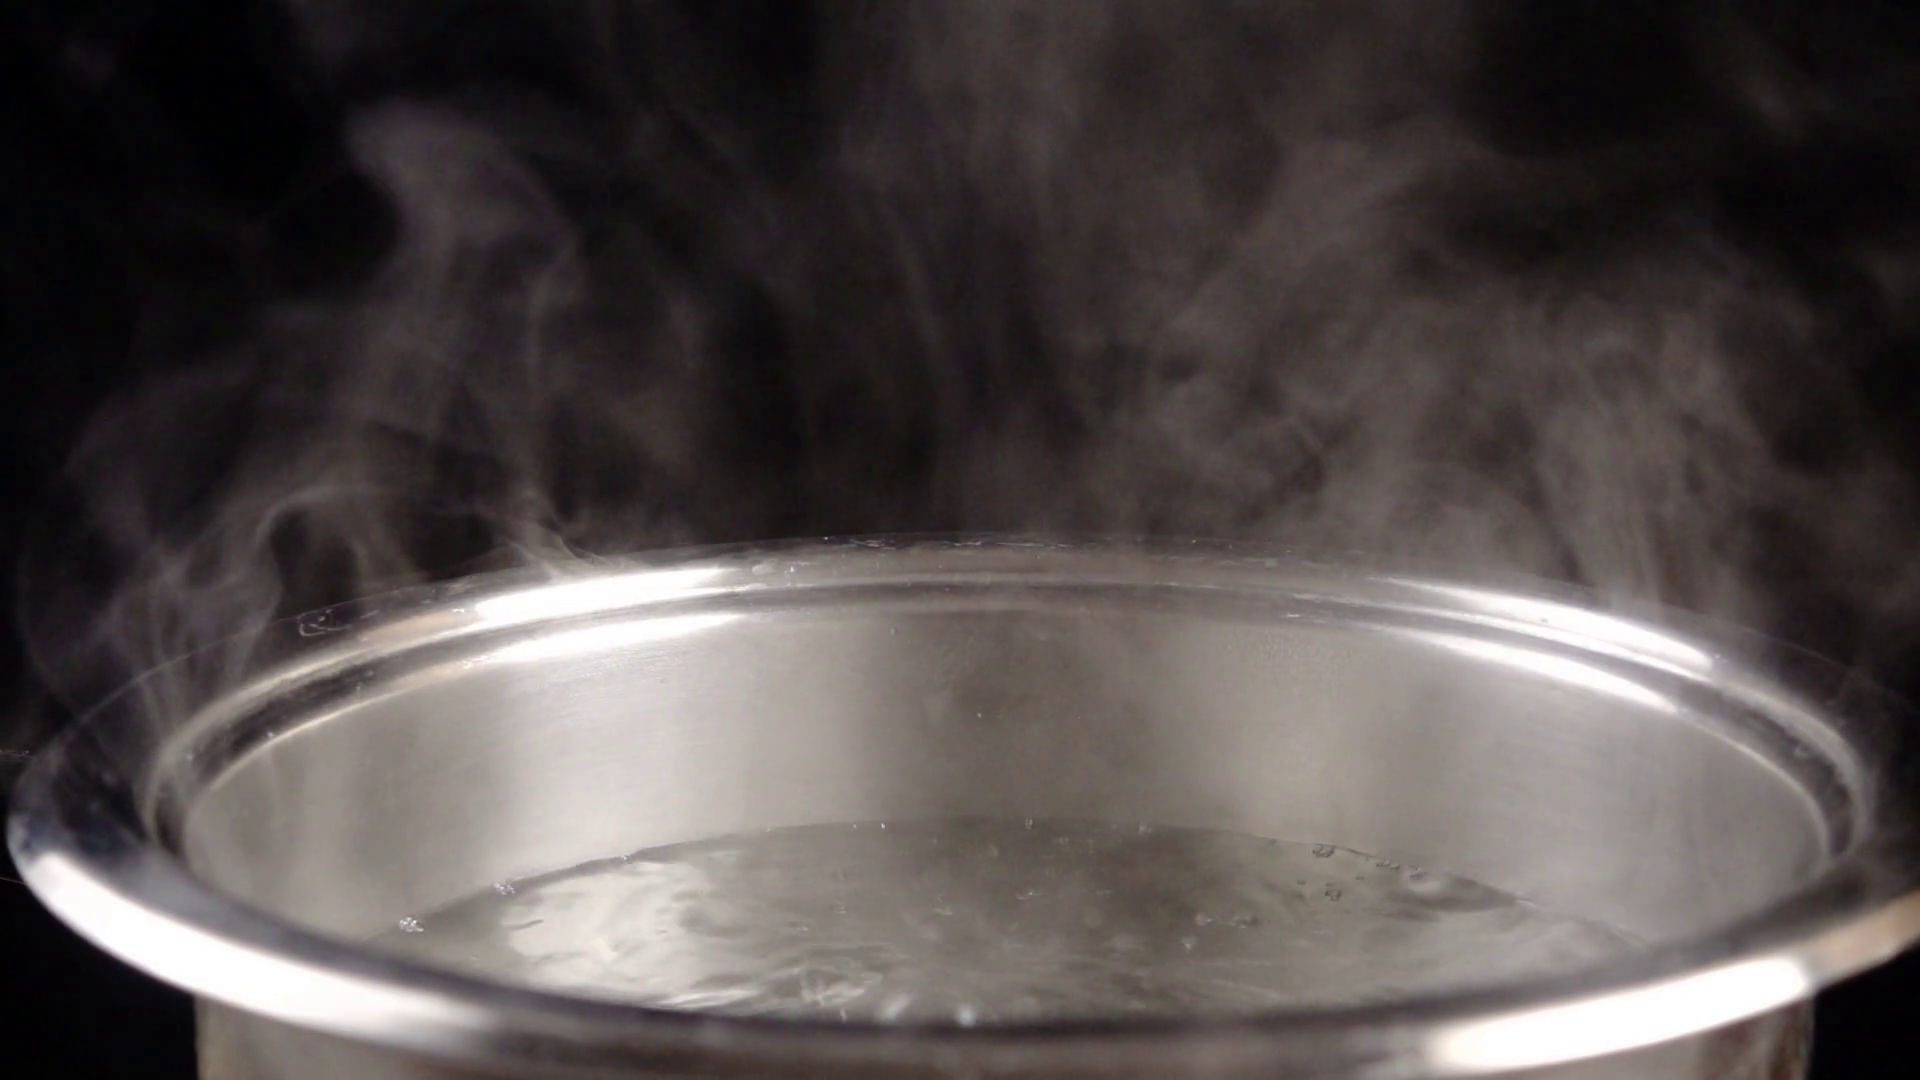 Boiling water photo